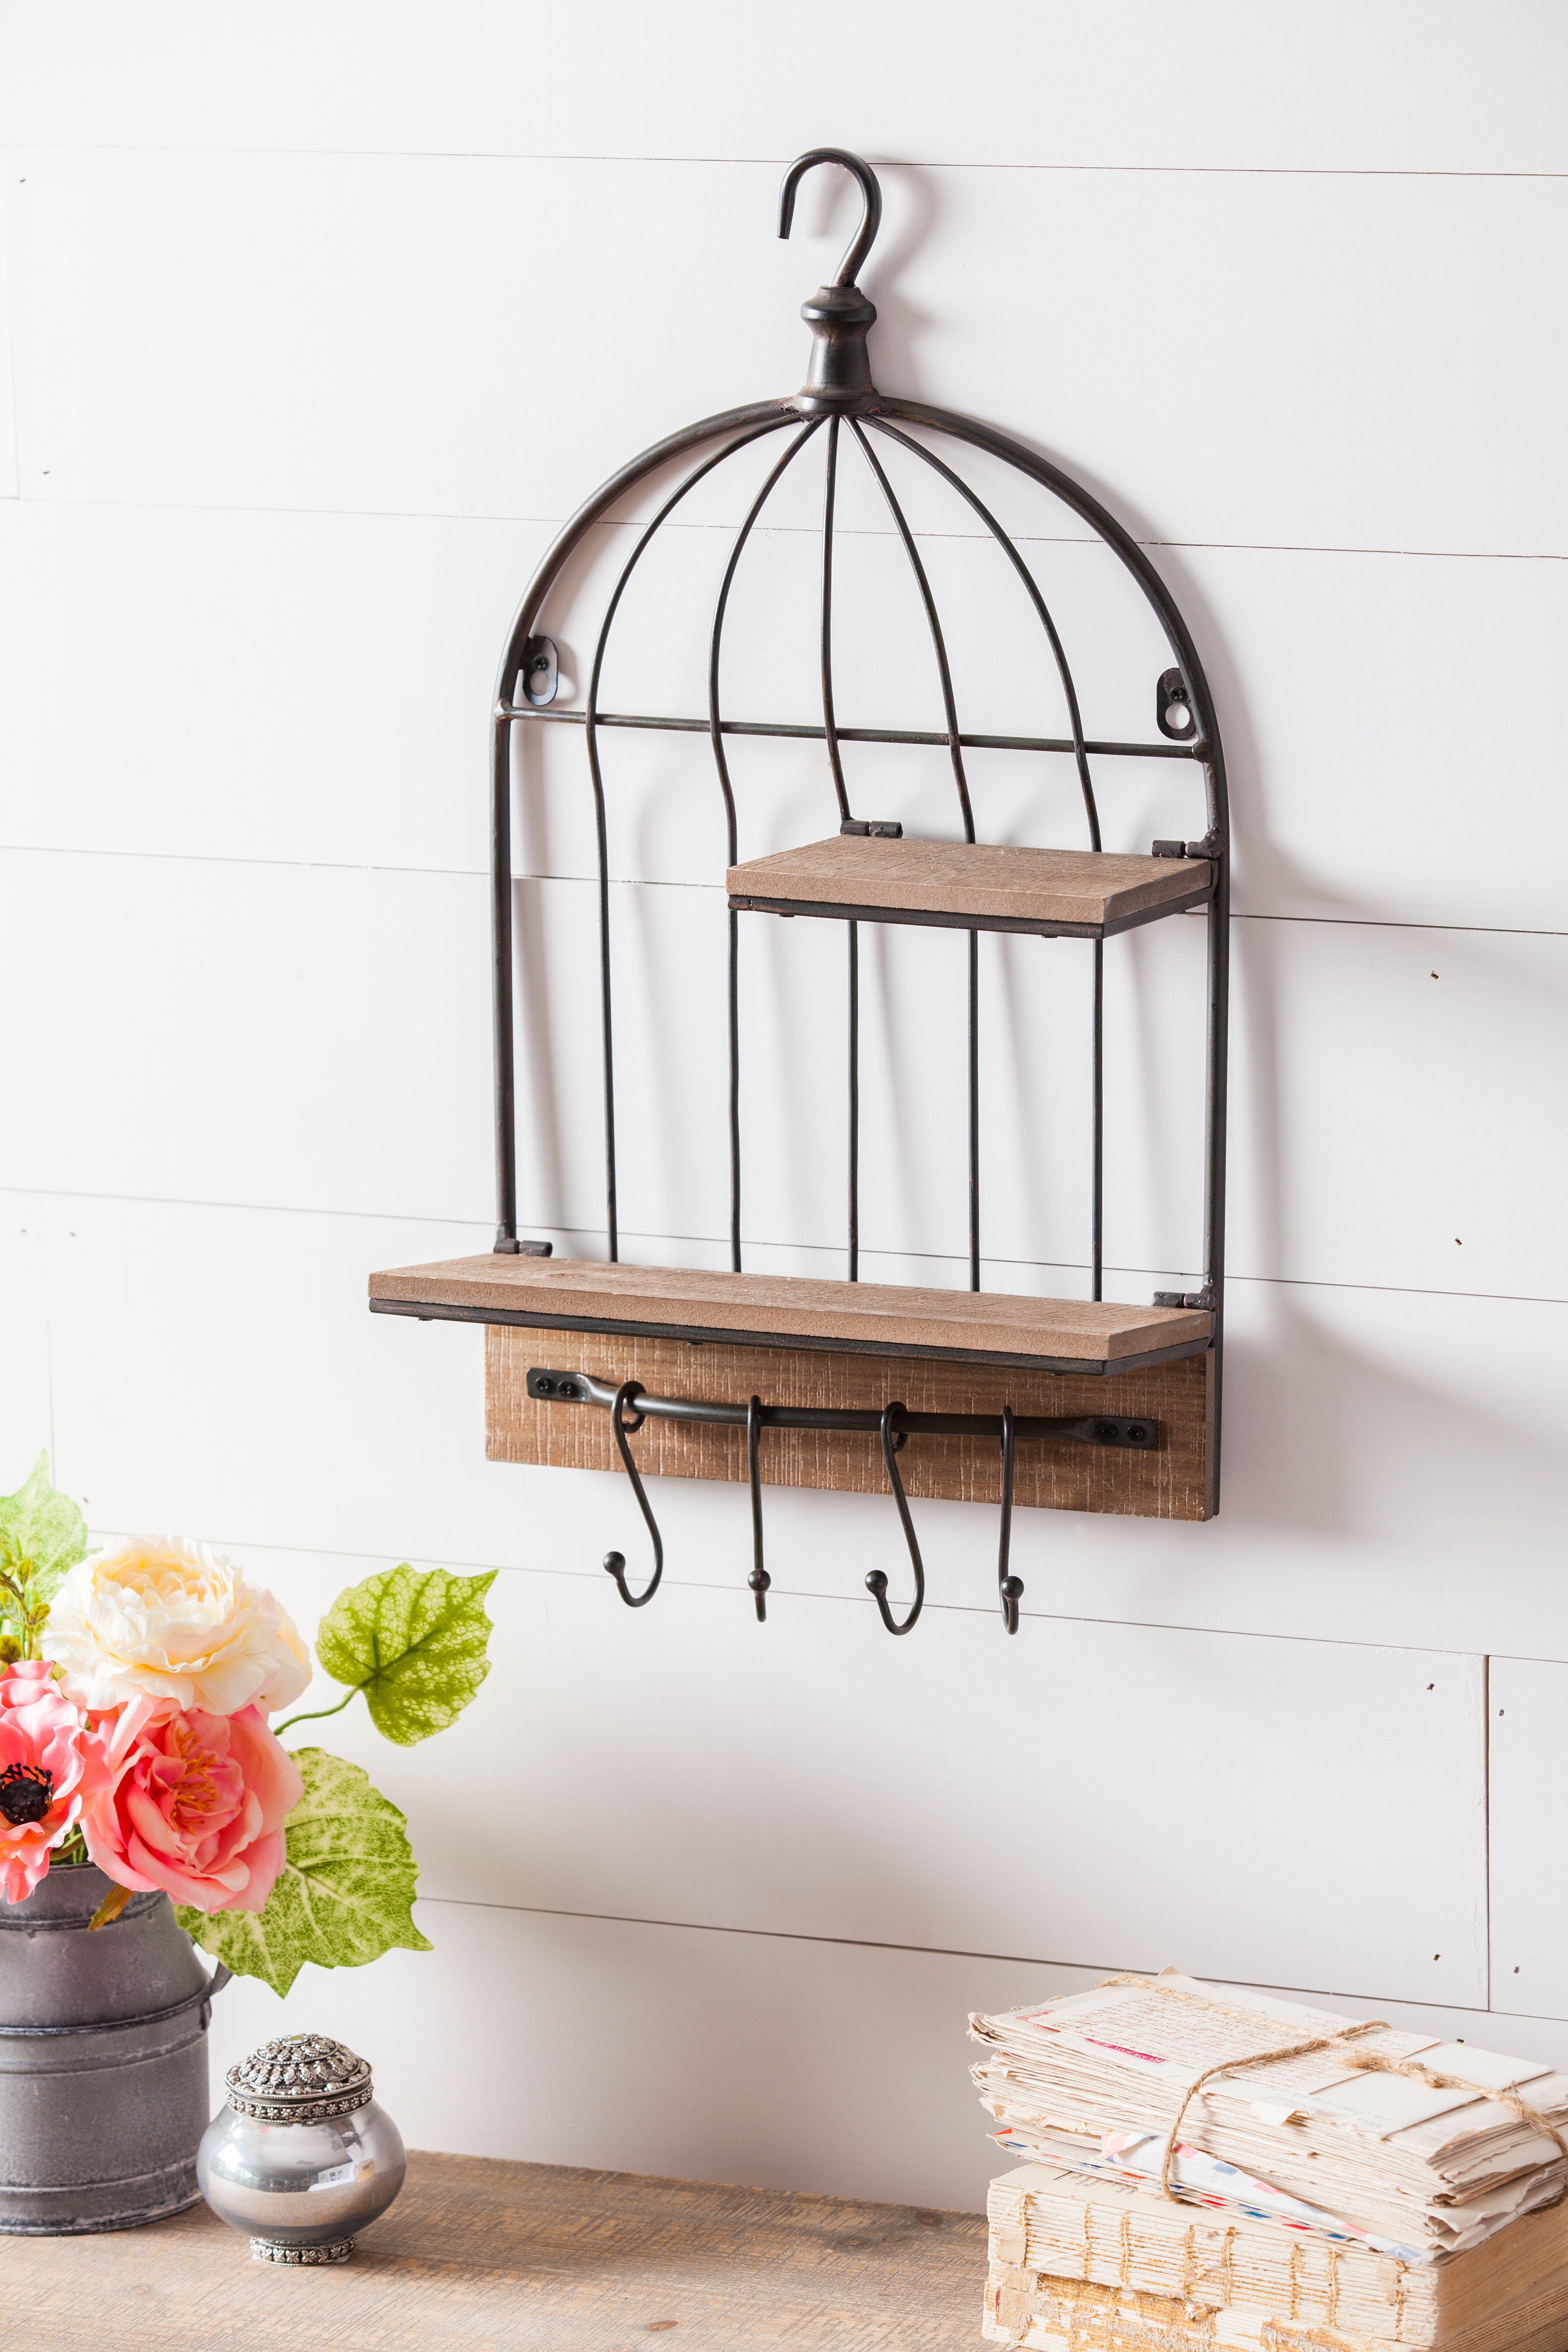 929a0acdf Ophelia   Co. Birdcage Metal Wall Décor with Wood Shelves